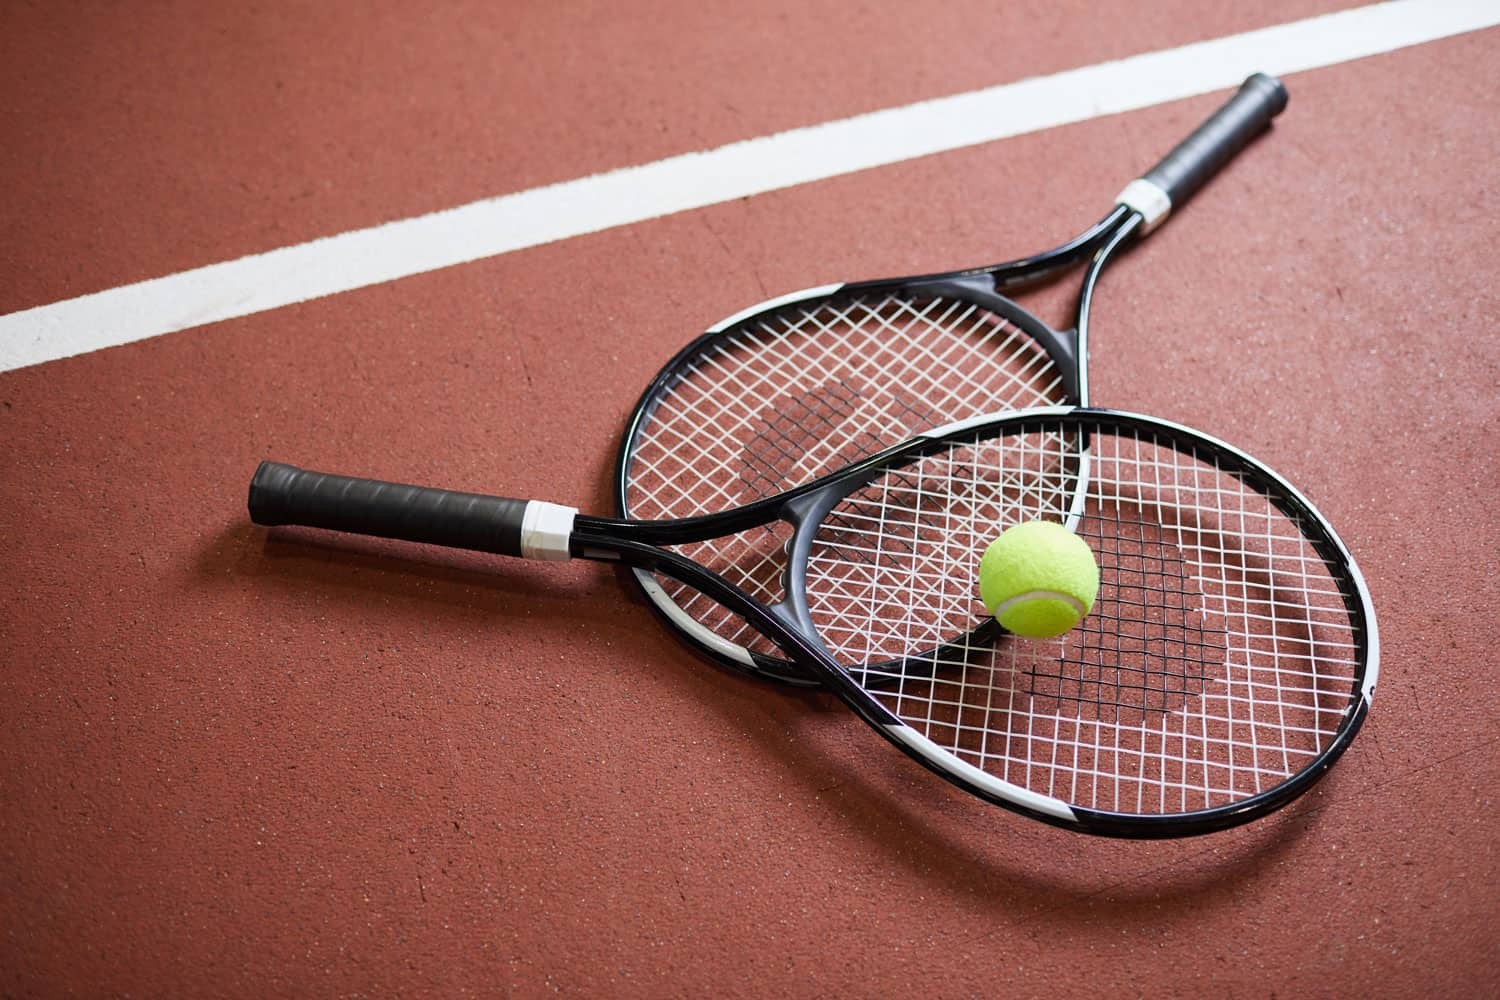 Two tennis rackets and a tennis ball placed on the side of a tennis court